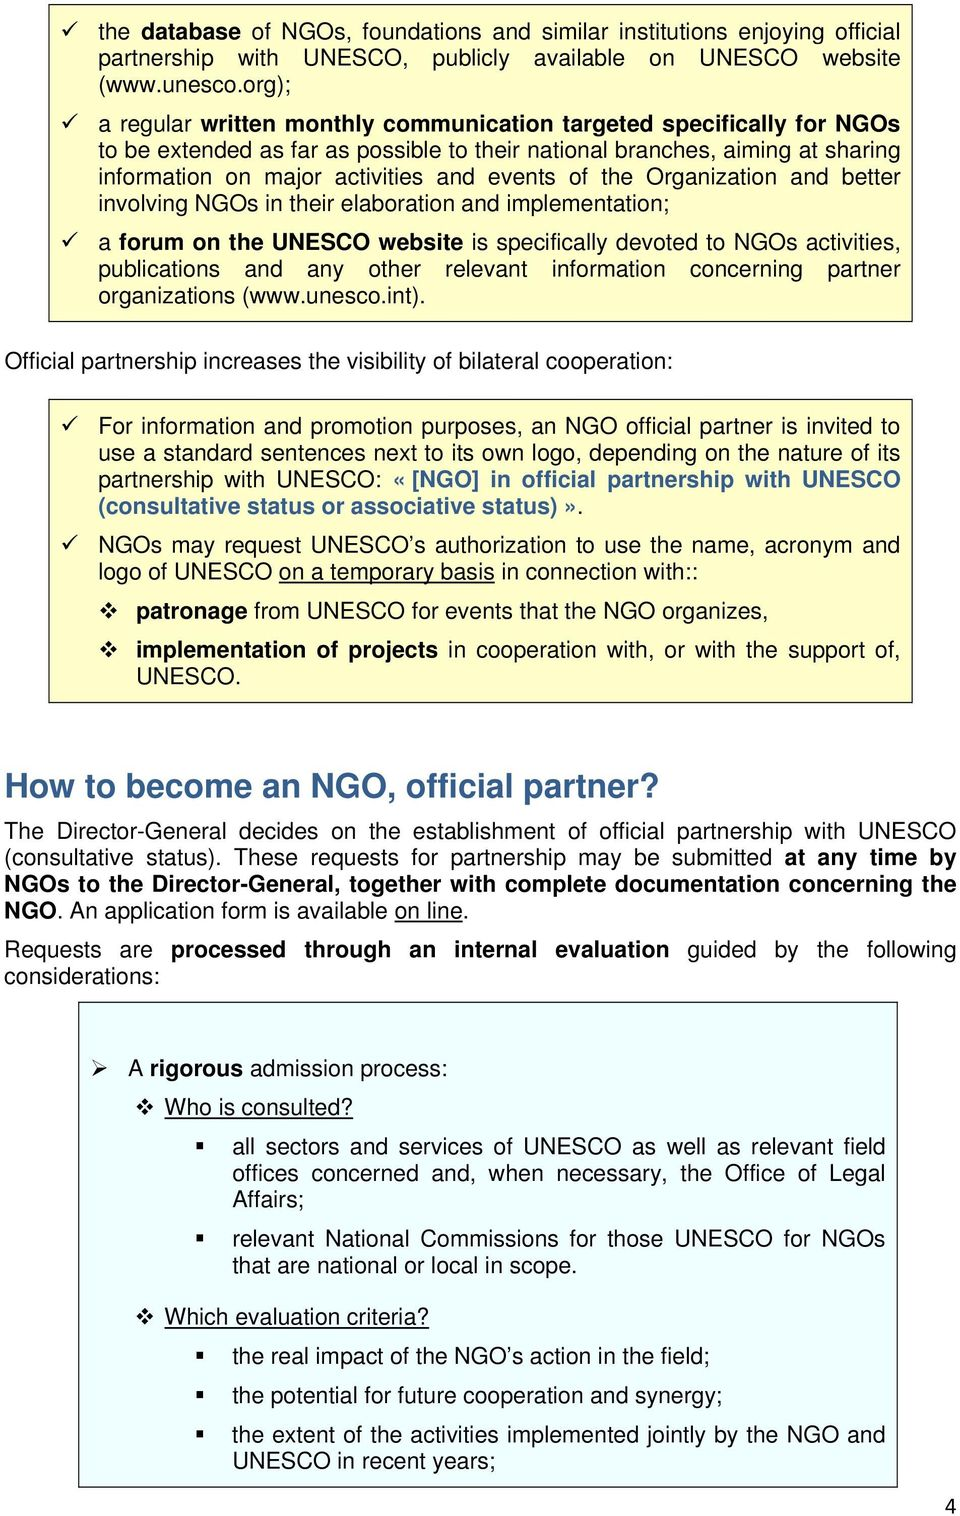 of the Organization and better involving NGOs in their elaboration and implementation; a forum on the UNESCO website is specifically devoted to NGOs activities, publications and any other relevant